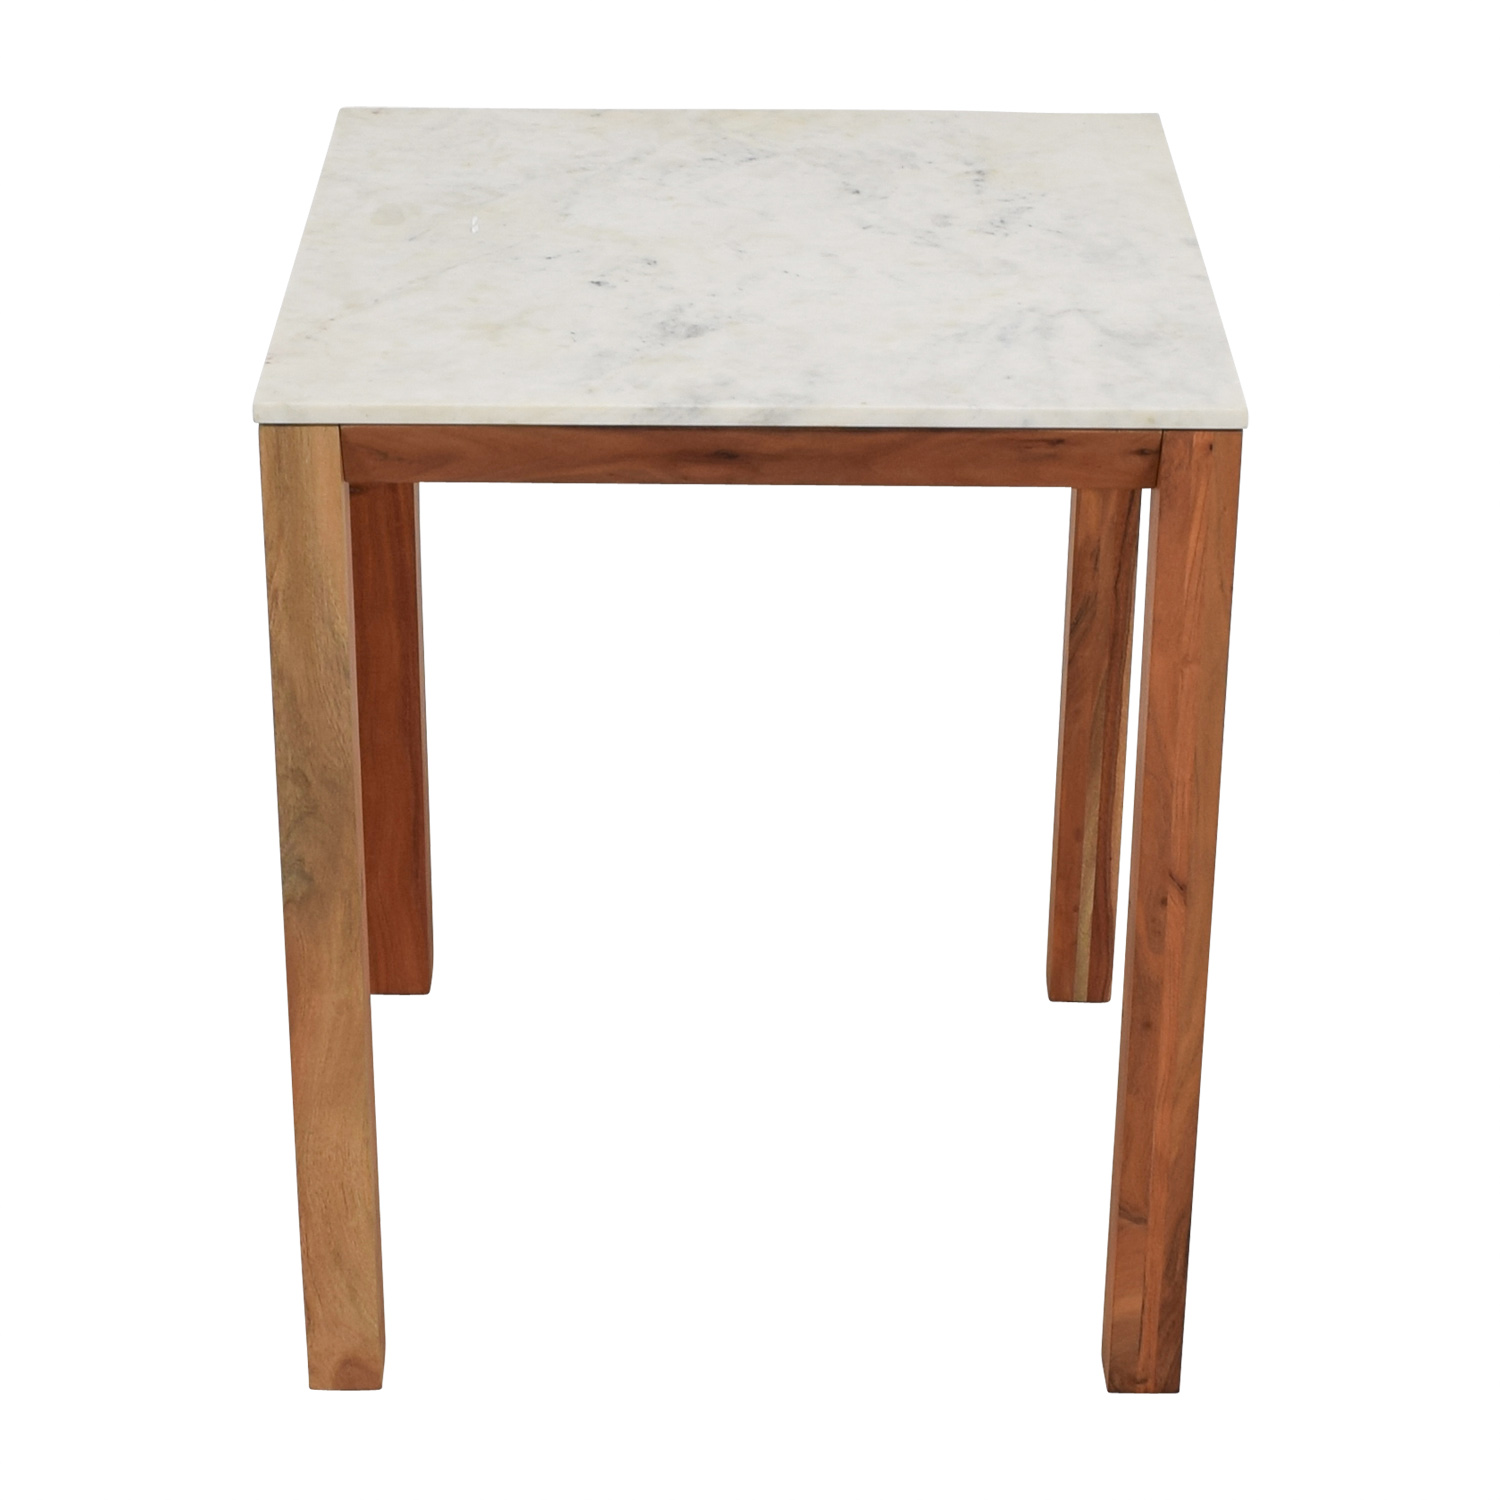 CB2 Palate Marble High Counter Table / Tables